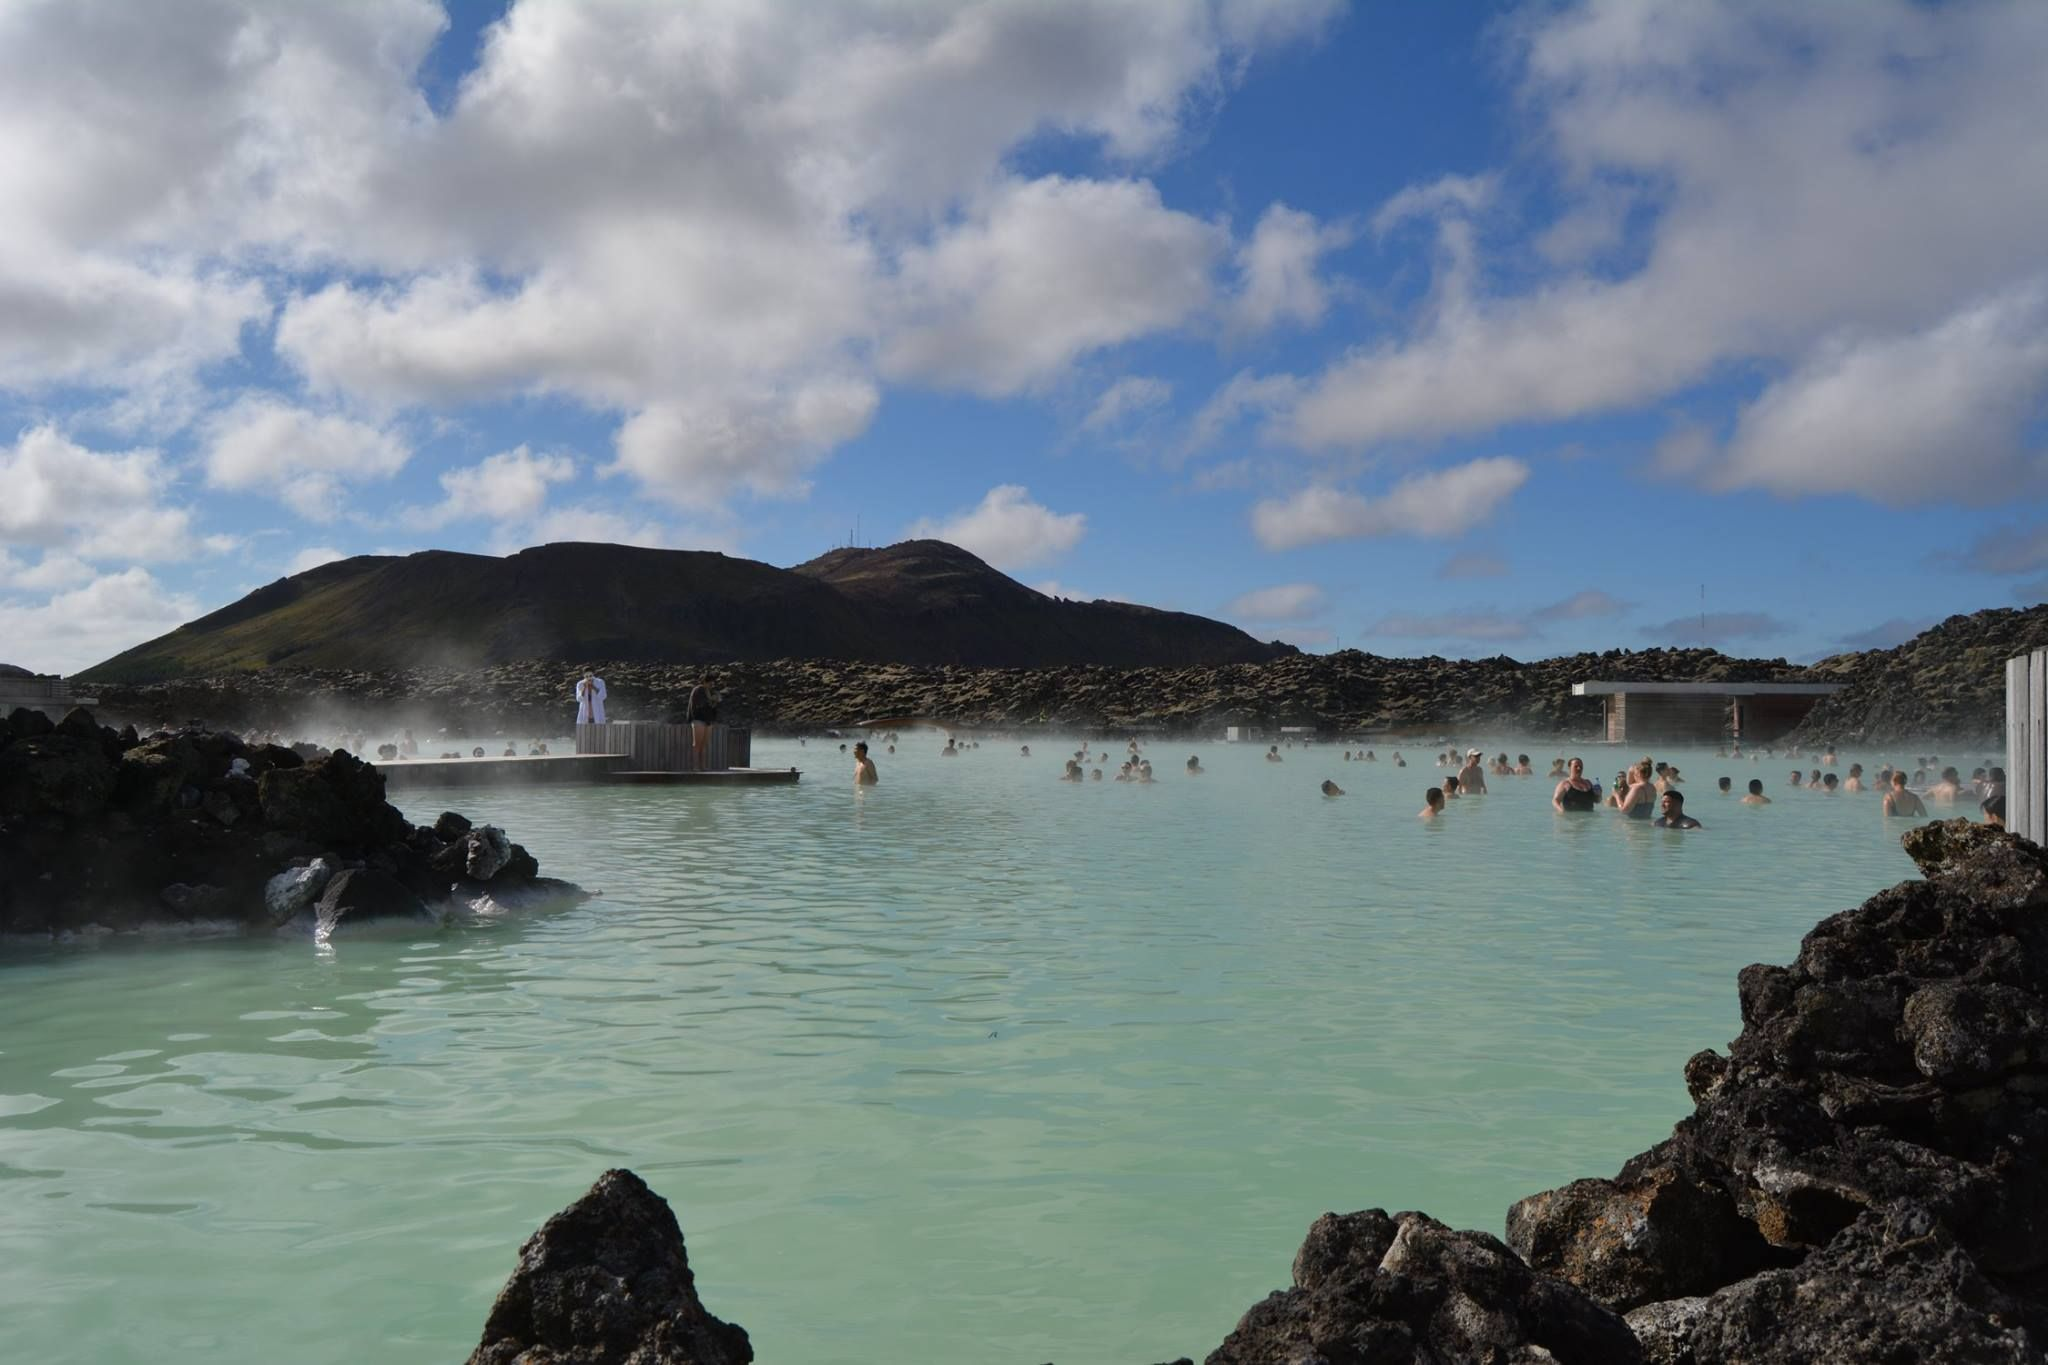 Read all about the #Epic #Adventure of Chris & his girlfriend when they drove around #Iceland in a #Camper. #CamperStories #WohoCamper #CamperHireIceland #IcelandCamperVanRental #Layover #Stopover #IcelandTrip #BlueLagoon #GeoThermal